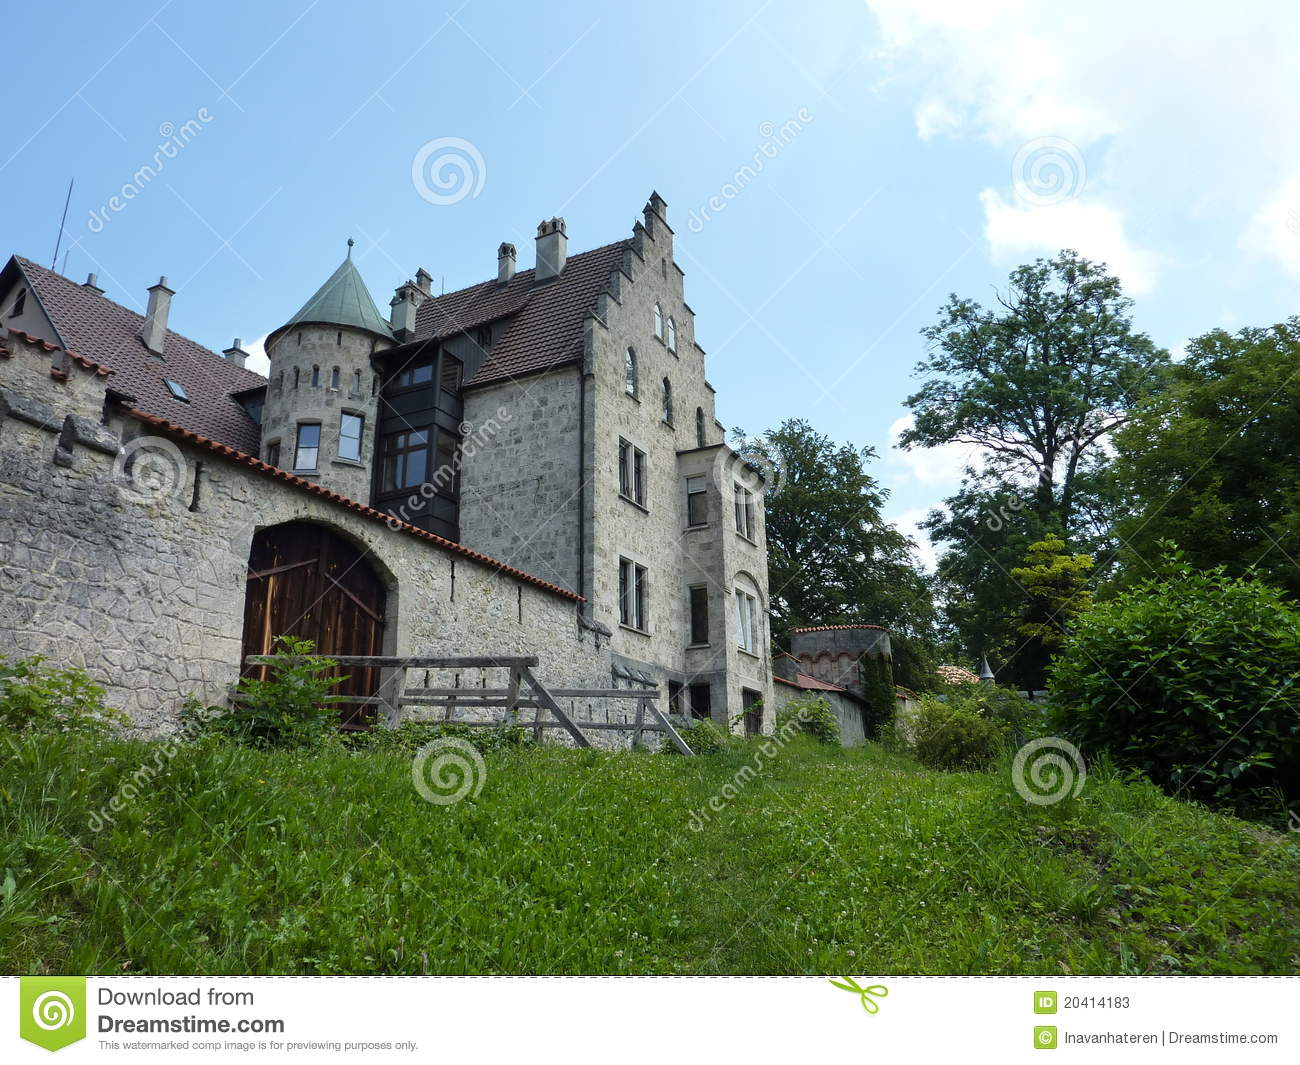 The romantic castle of lichtenstein in baden wuertemberg in germany